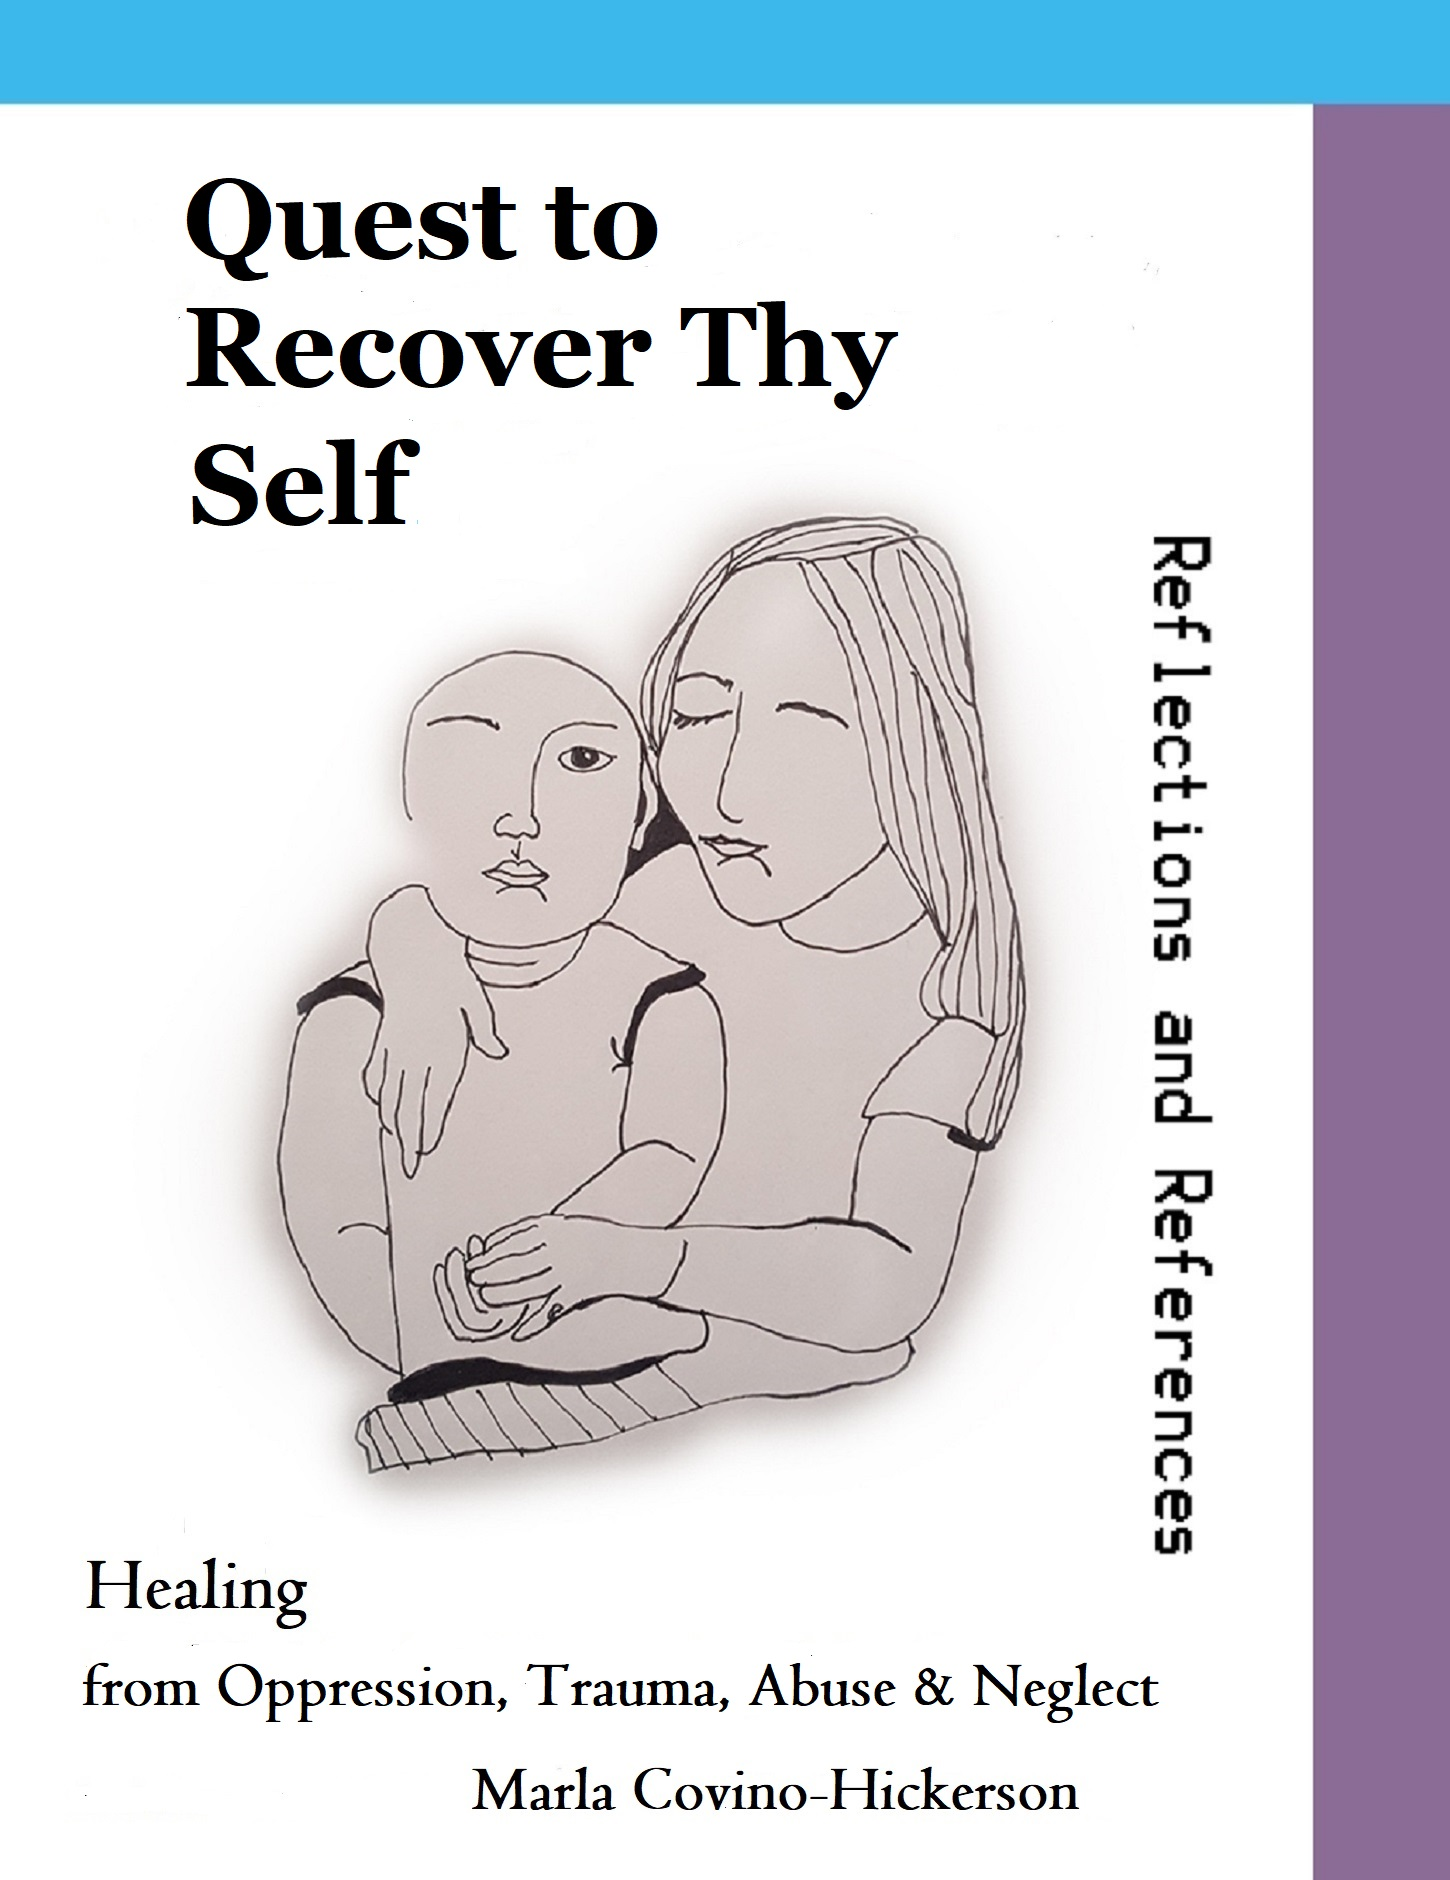 How Trauma Abuse And Neglect In >> Smashwords Quest To Recover Thy Self Healing From Oppression